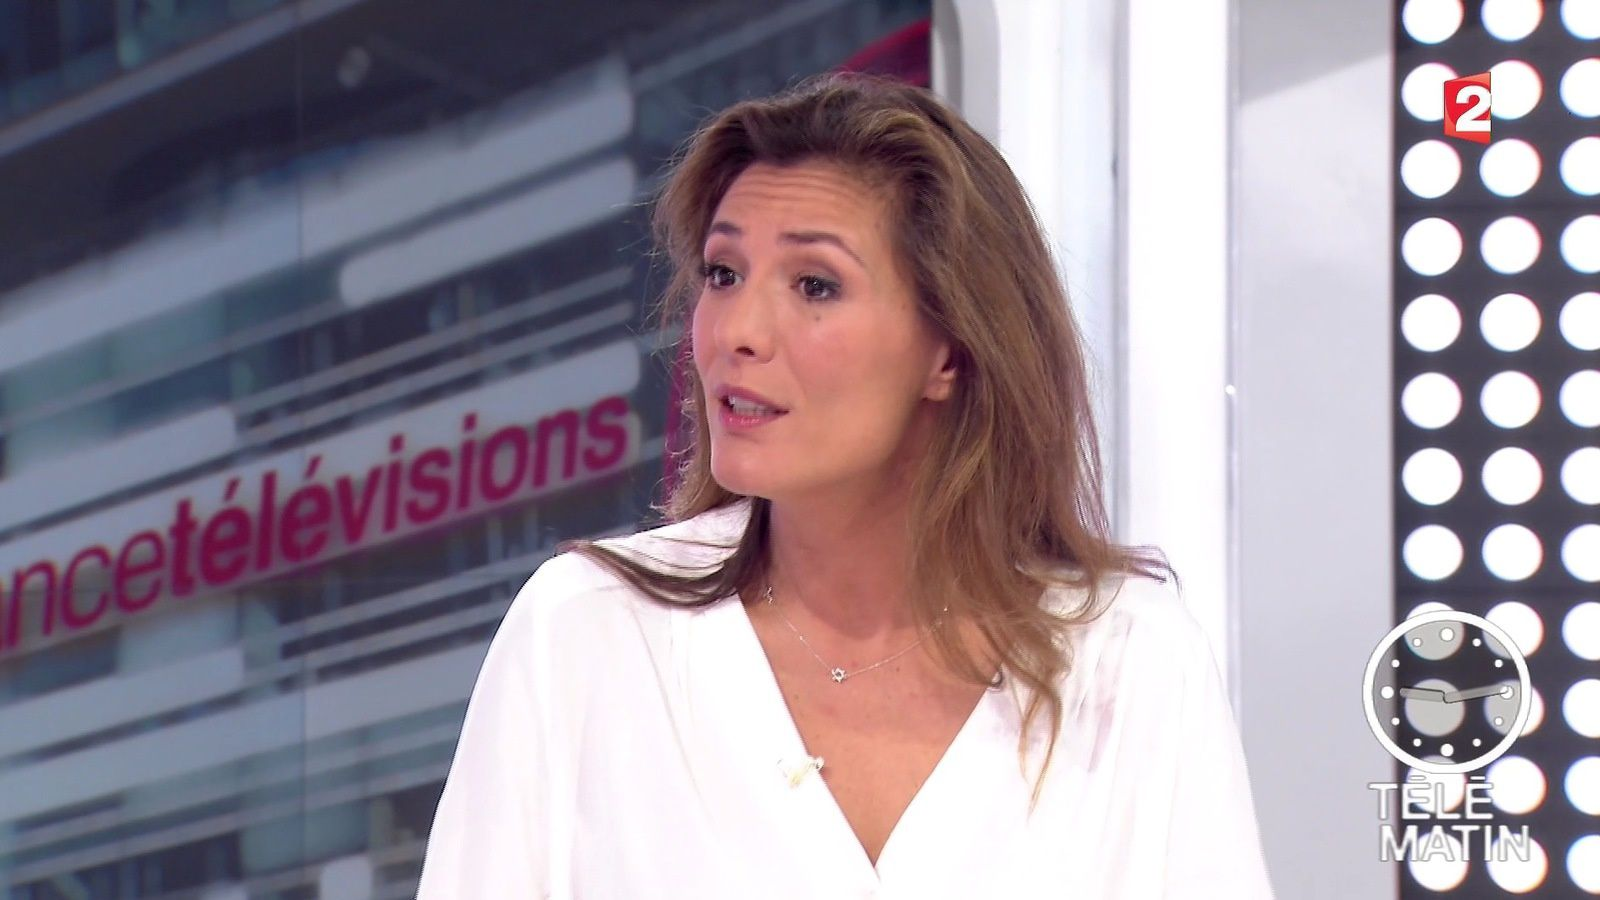 marie mamgioglou dans telematin le 2016 04 15 sur france 2. Black Bedroom Furniture Sets. Home Design Ideas